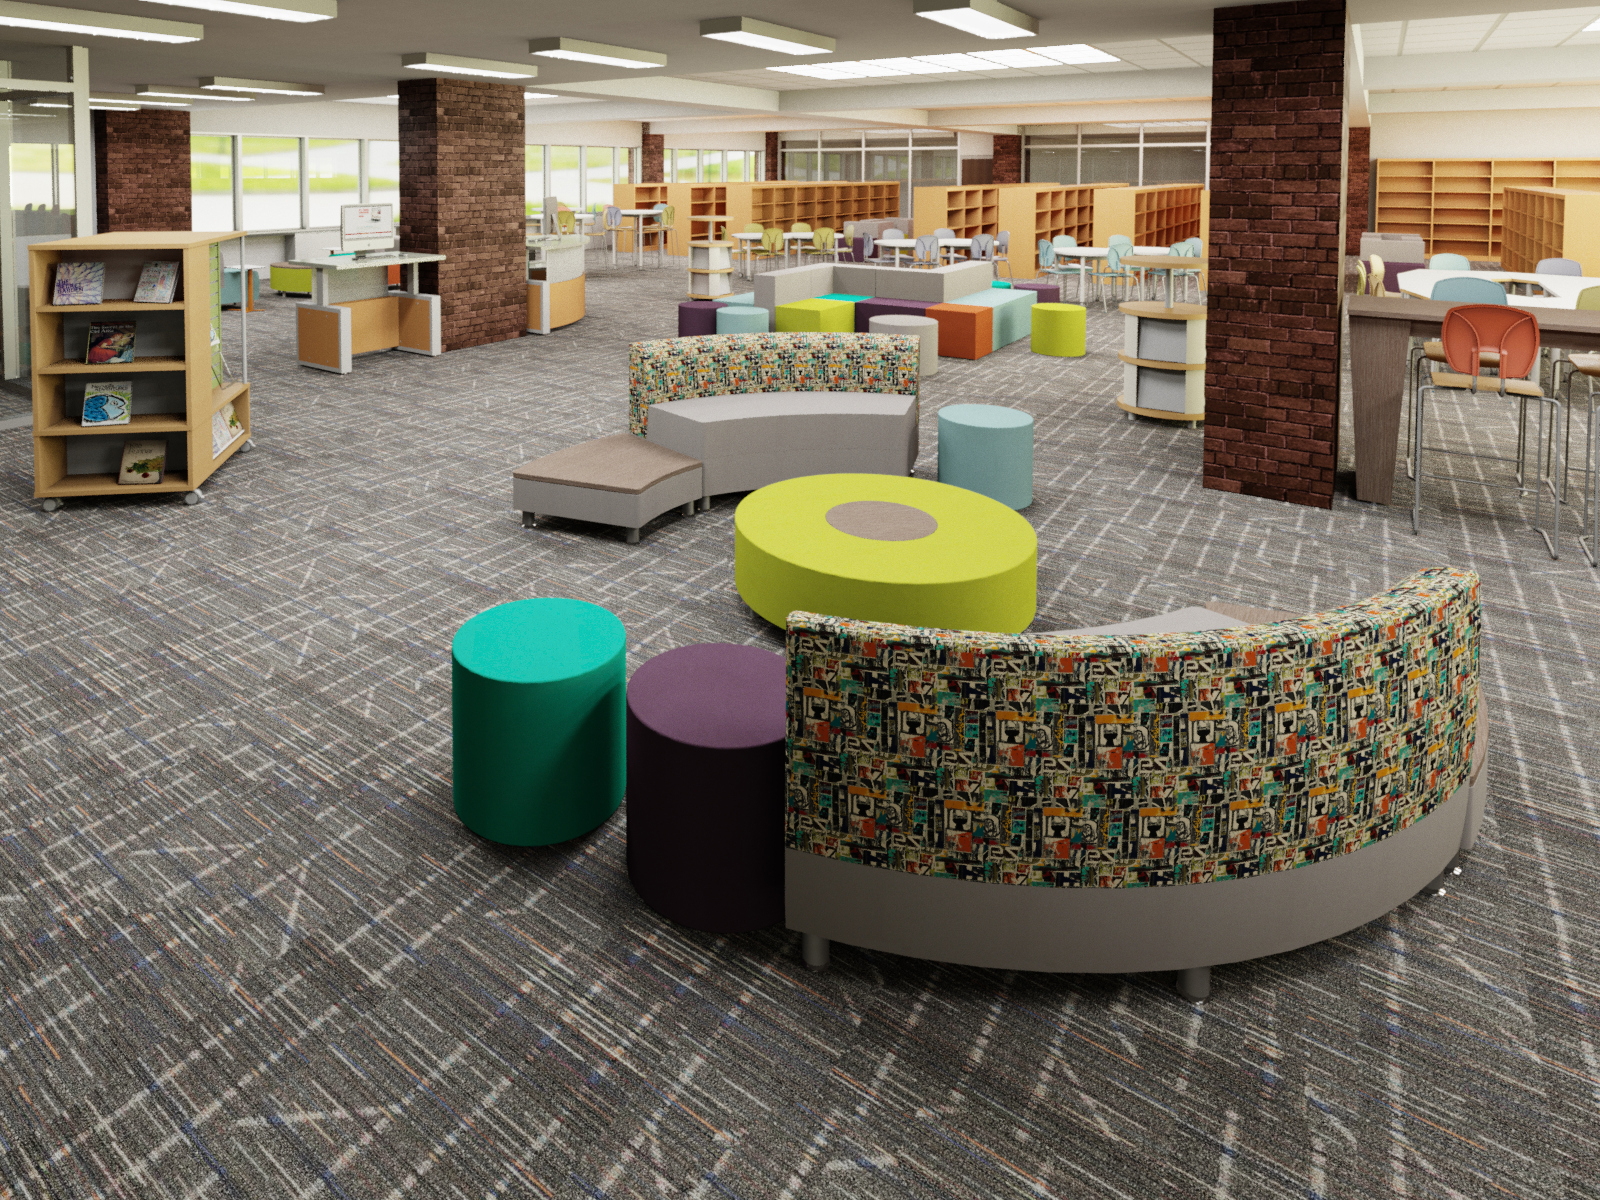 Library learning environment